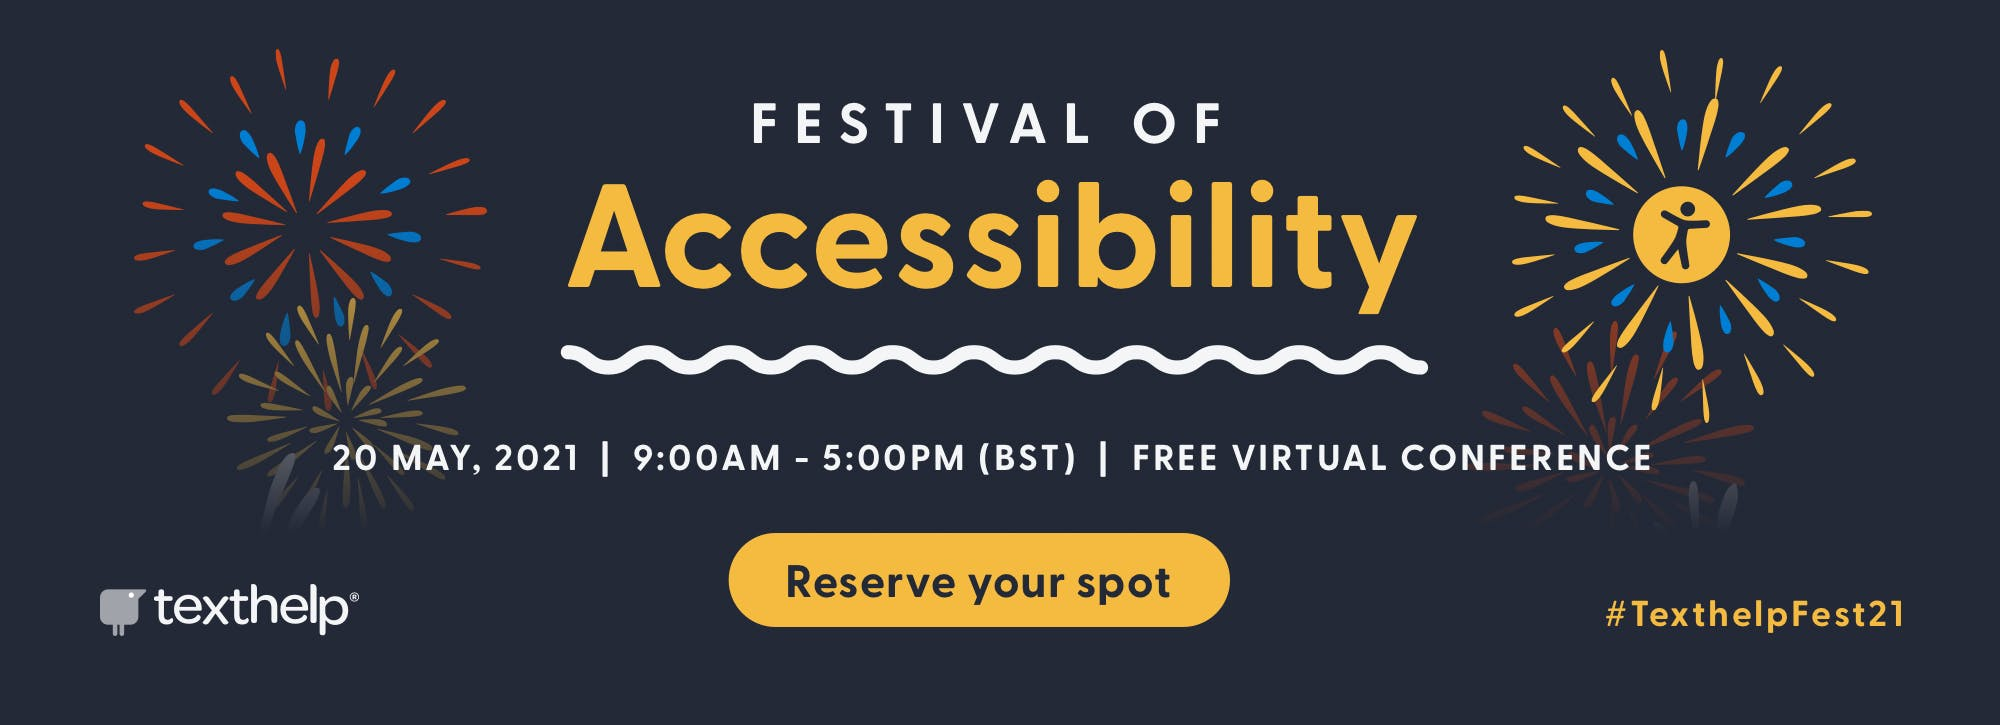 Festival of Accessibility 20 May 2021. Free virtual conference. Reserve your spot